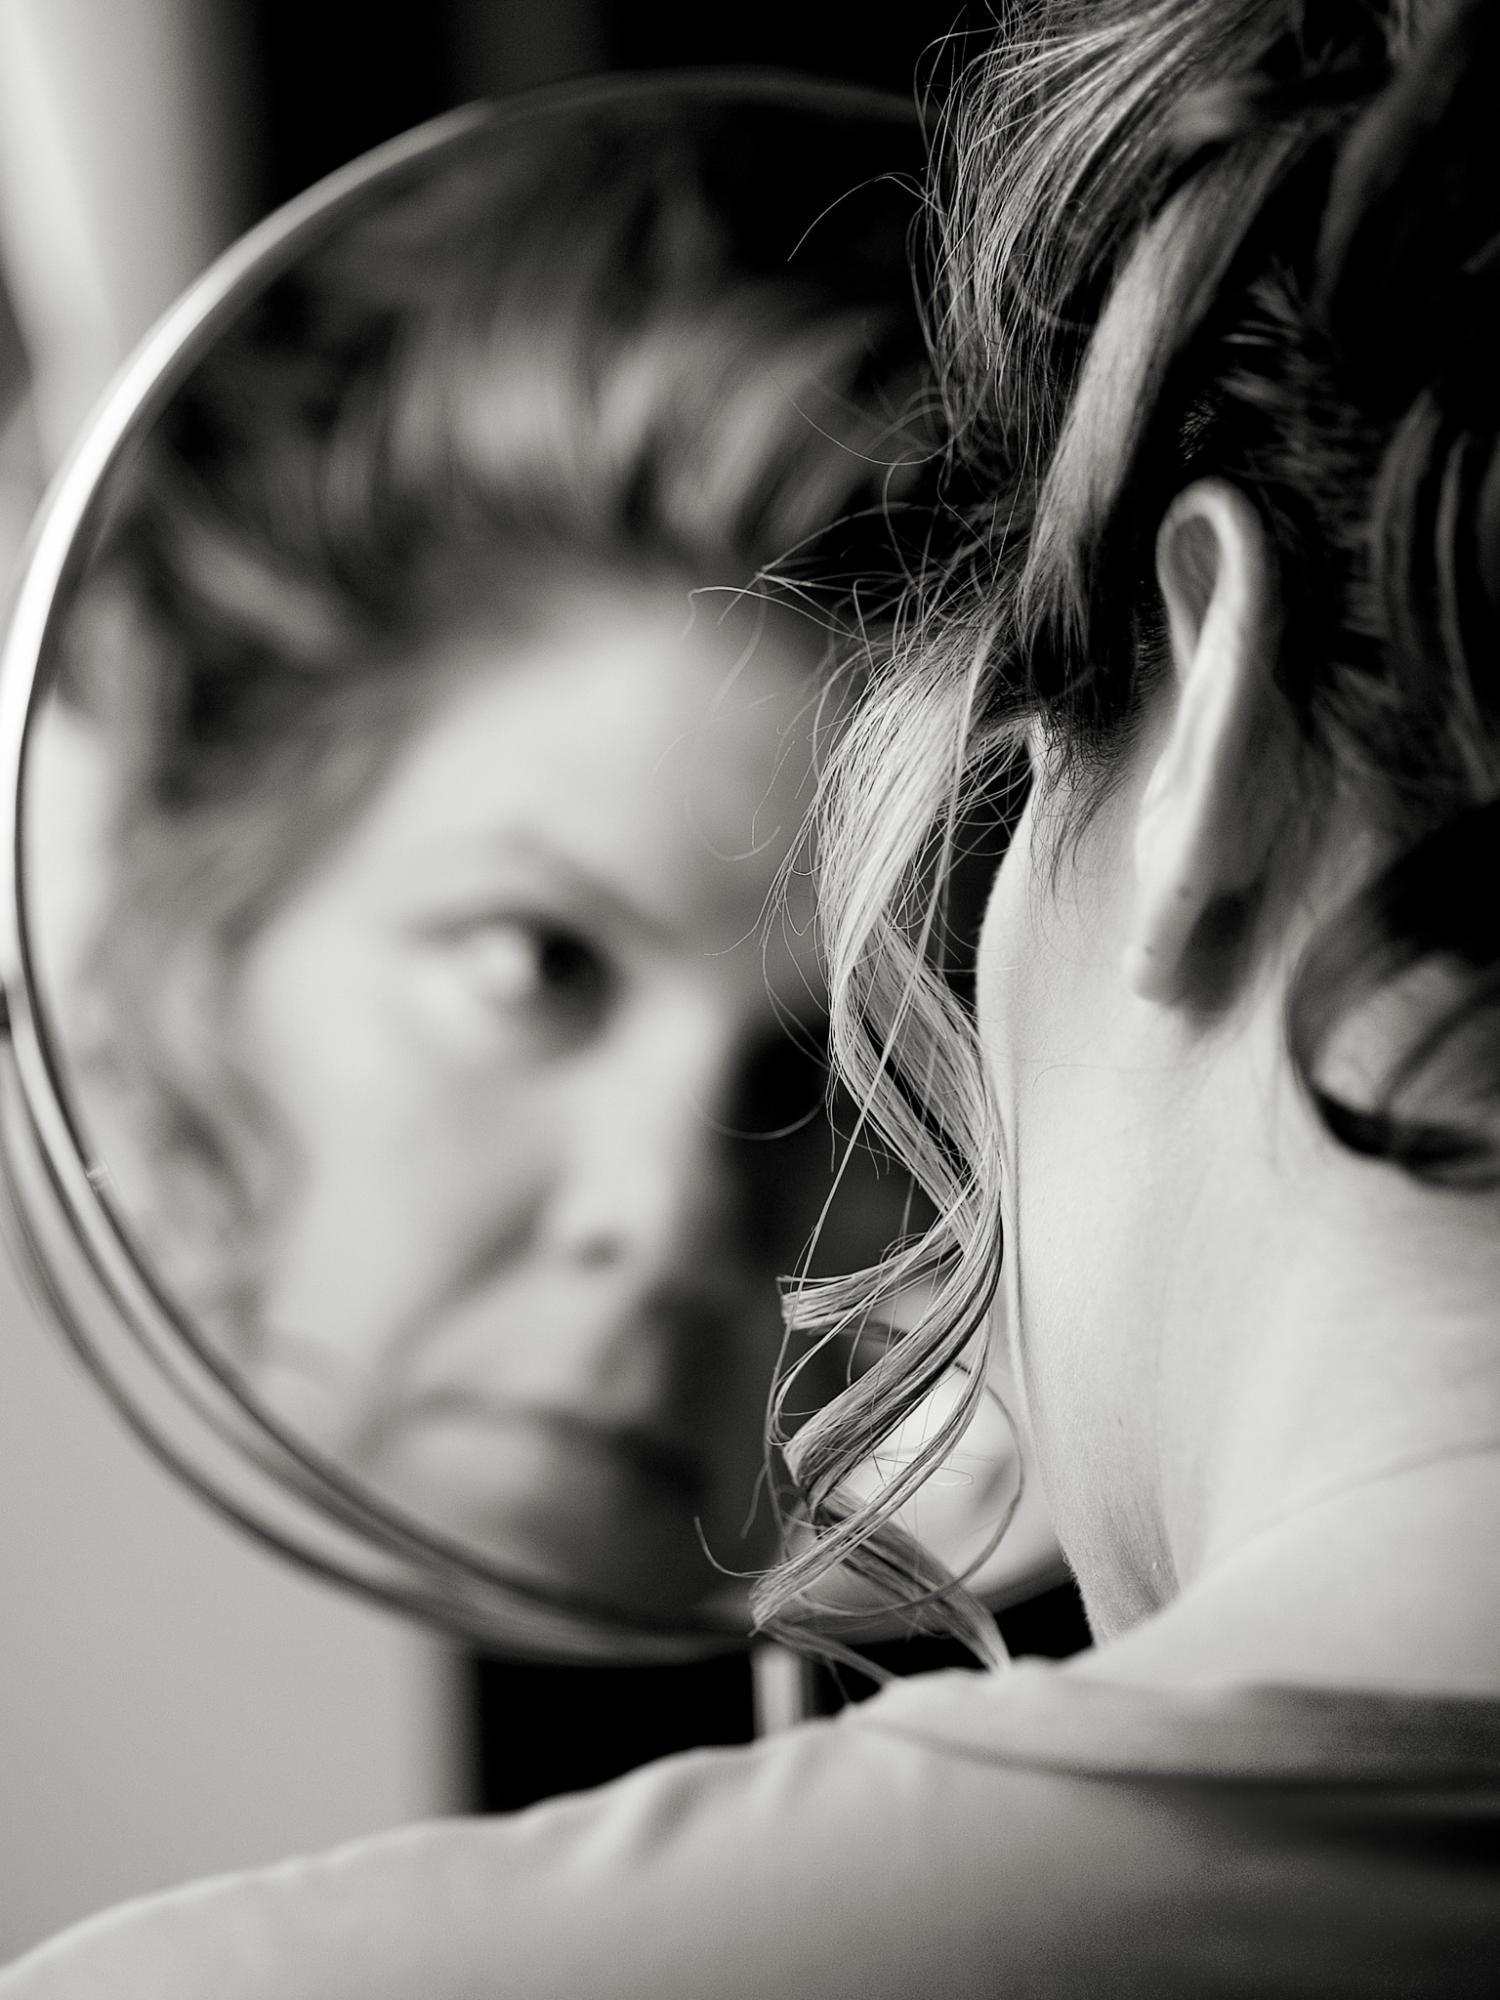 treatment affects the perception of emotions botox treatment affects the perception of emotions